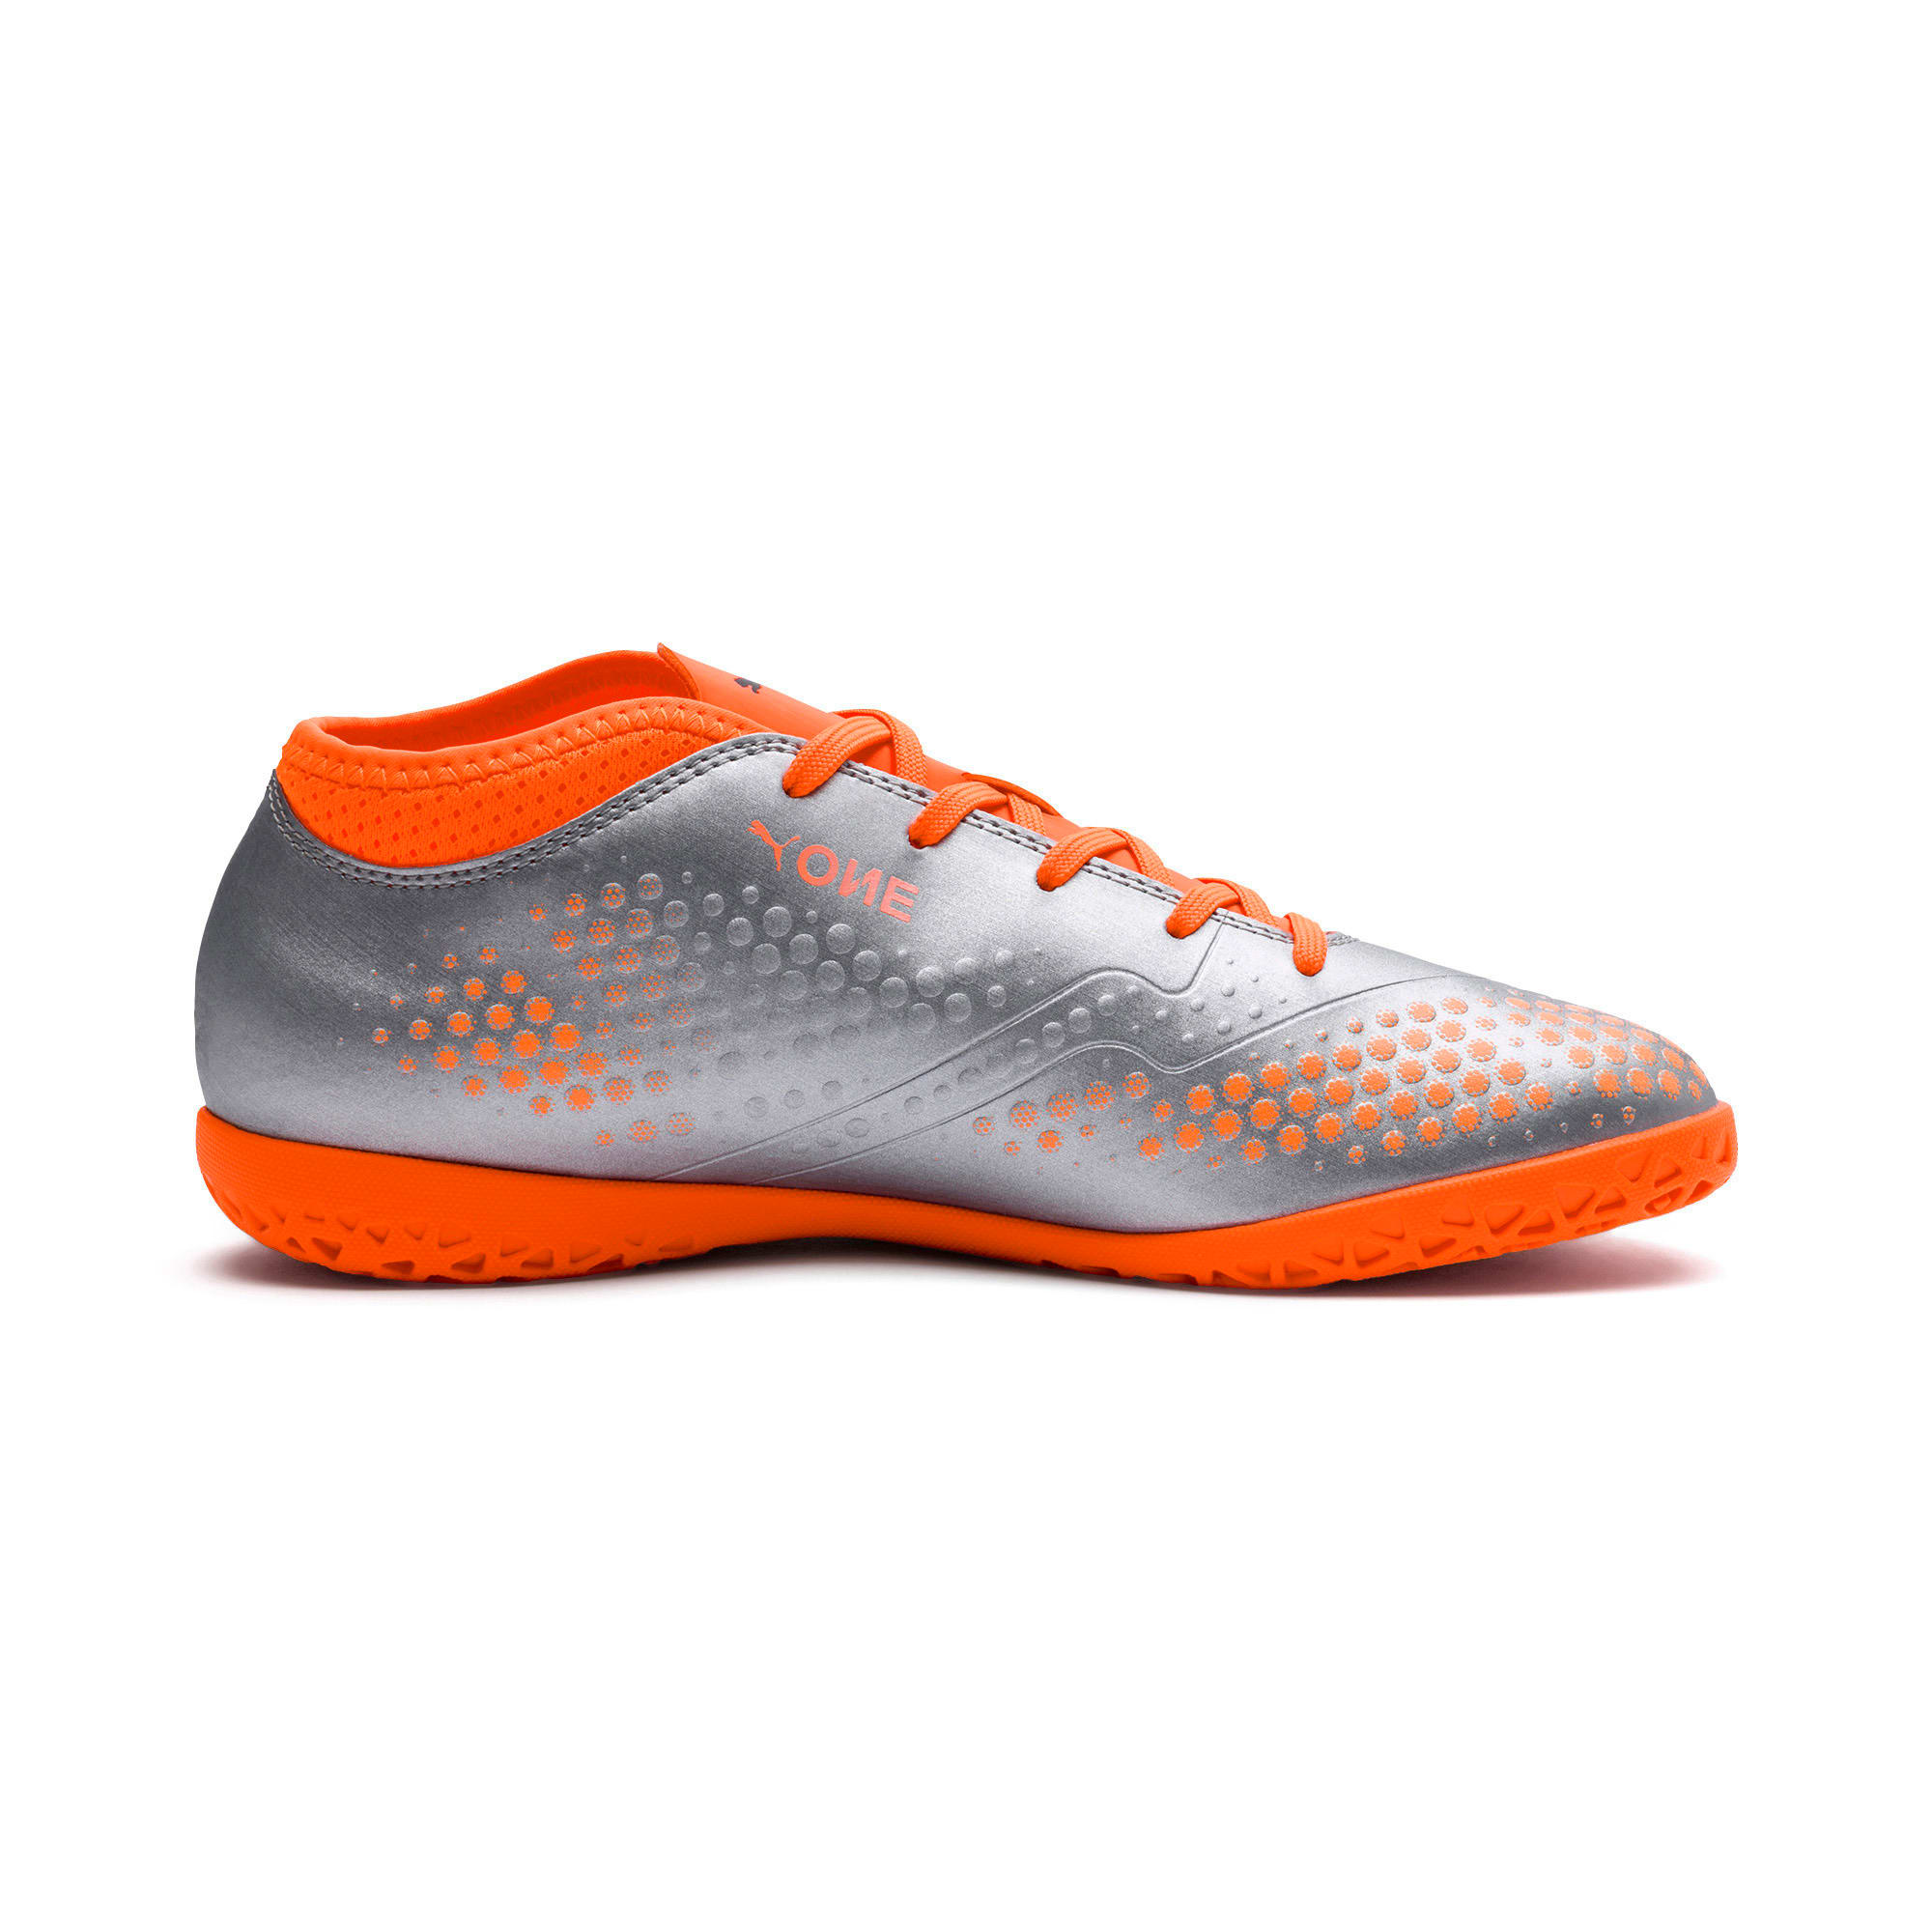 Thumbnail 5 of PUMA ONE 4 Synthetic IT Kids' Football Shoes, Silver-Orange-Black, medium-IND